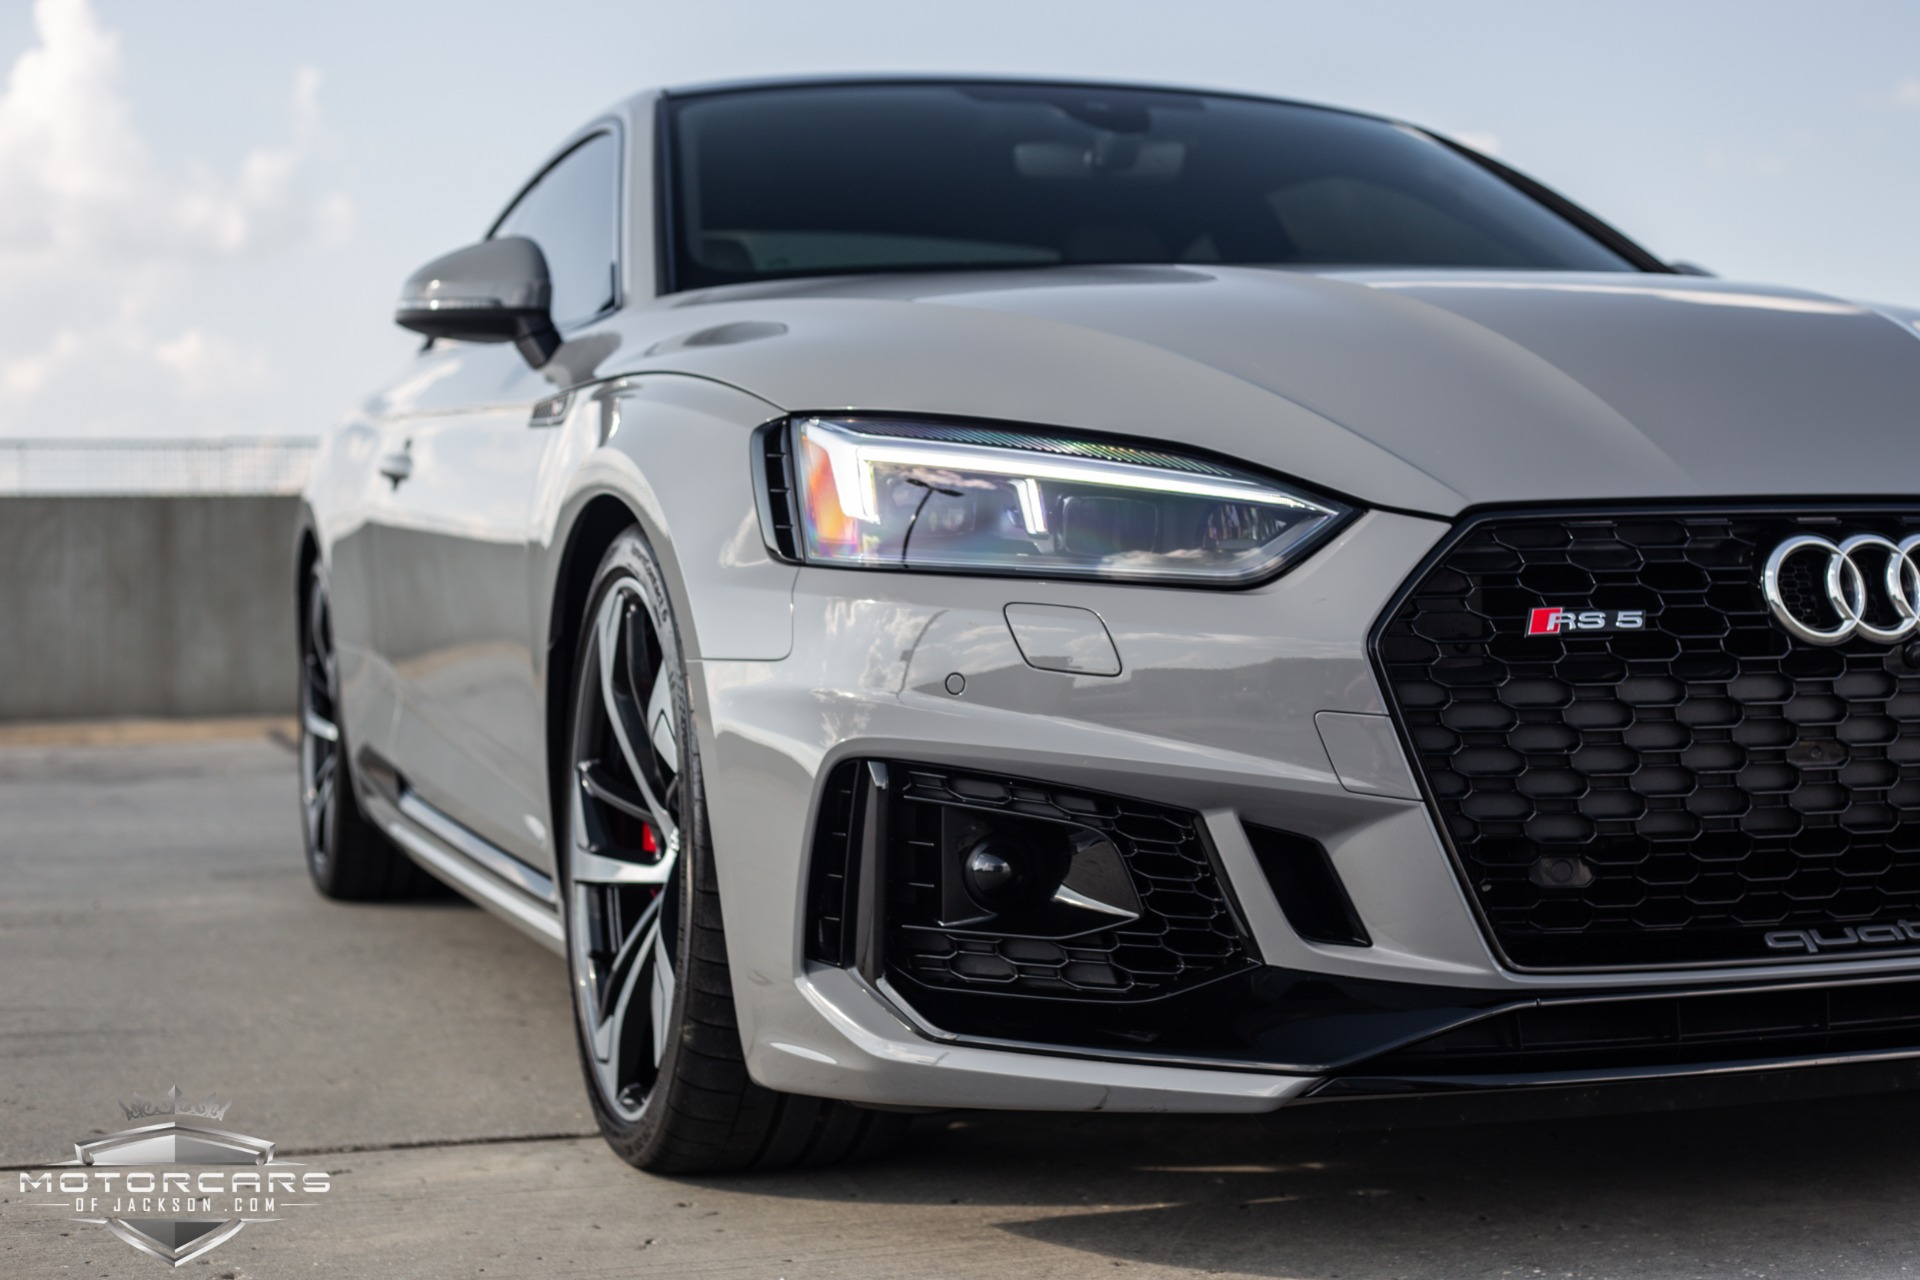 Used-2018-Audi-RS-5-Coupe-Jackson-MS